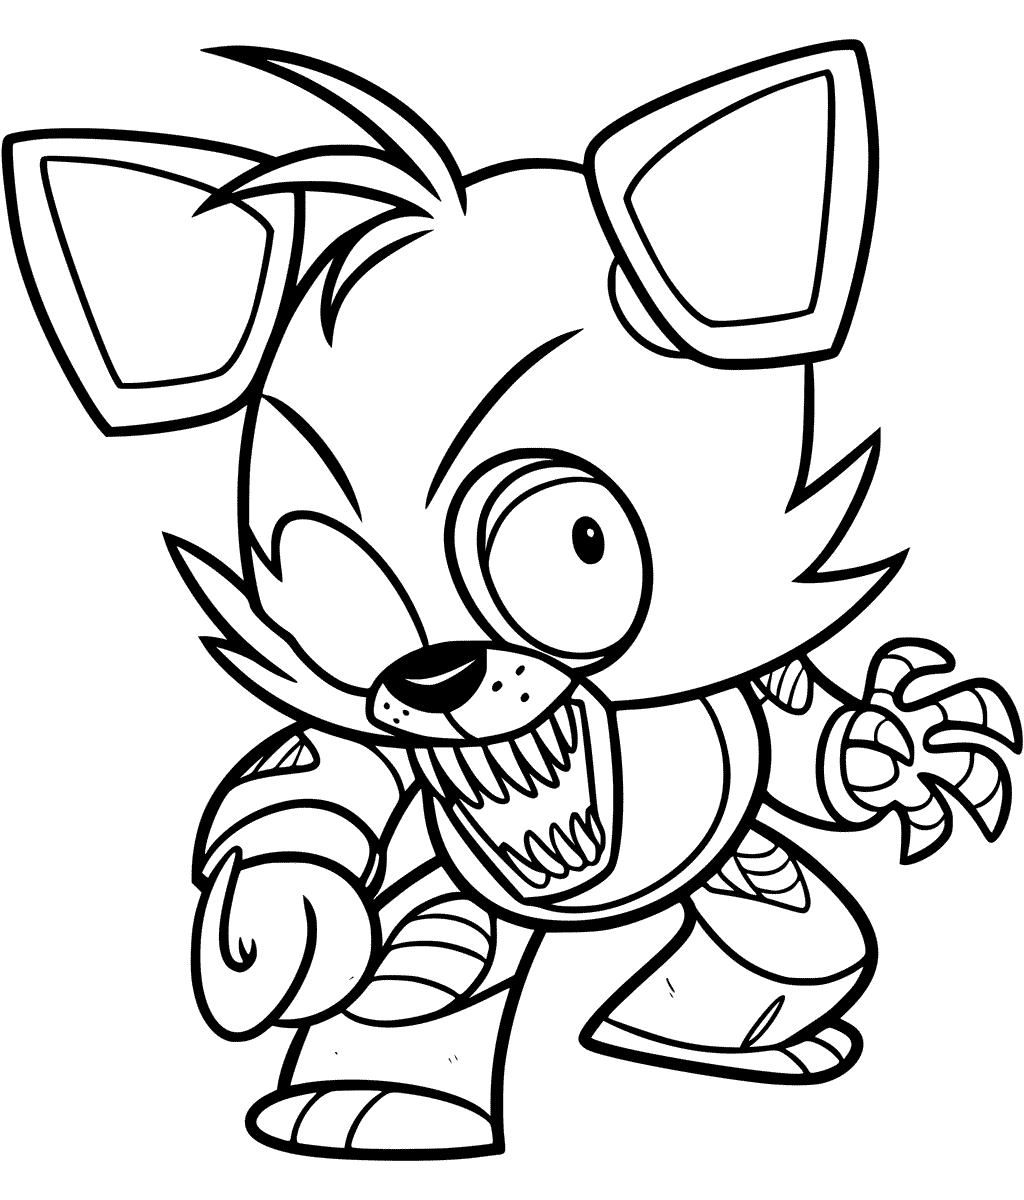 foxy coloring fnaf foxy coloring page free printable coloring pages foxy coloring